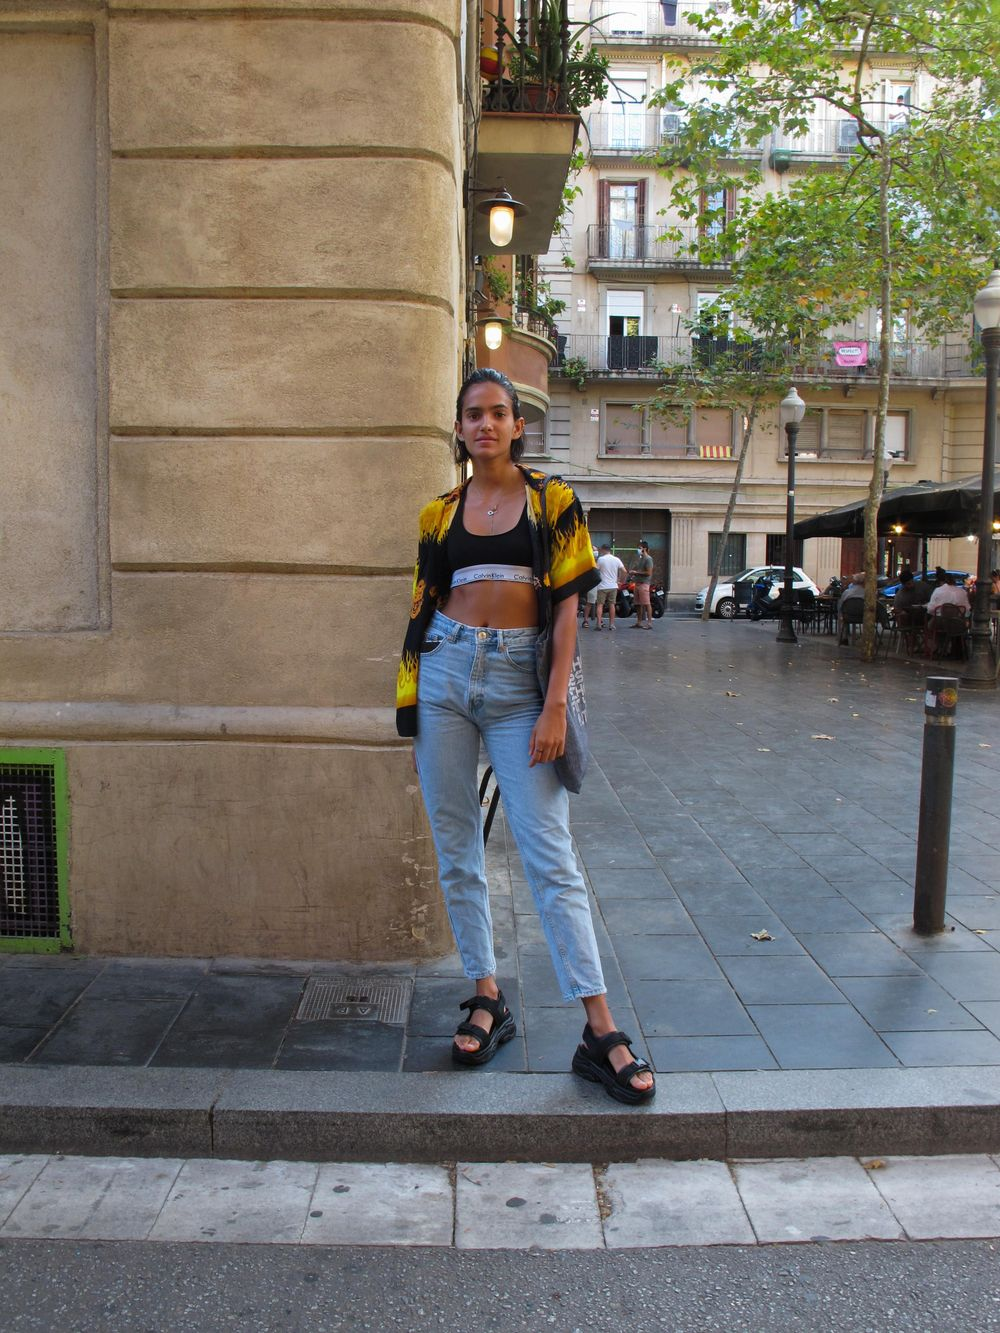 Street Fashion Barcelona (@adoquinculture) - image 4 - student project